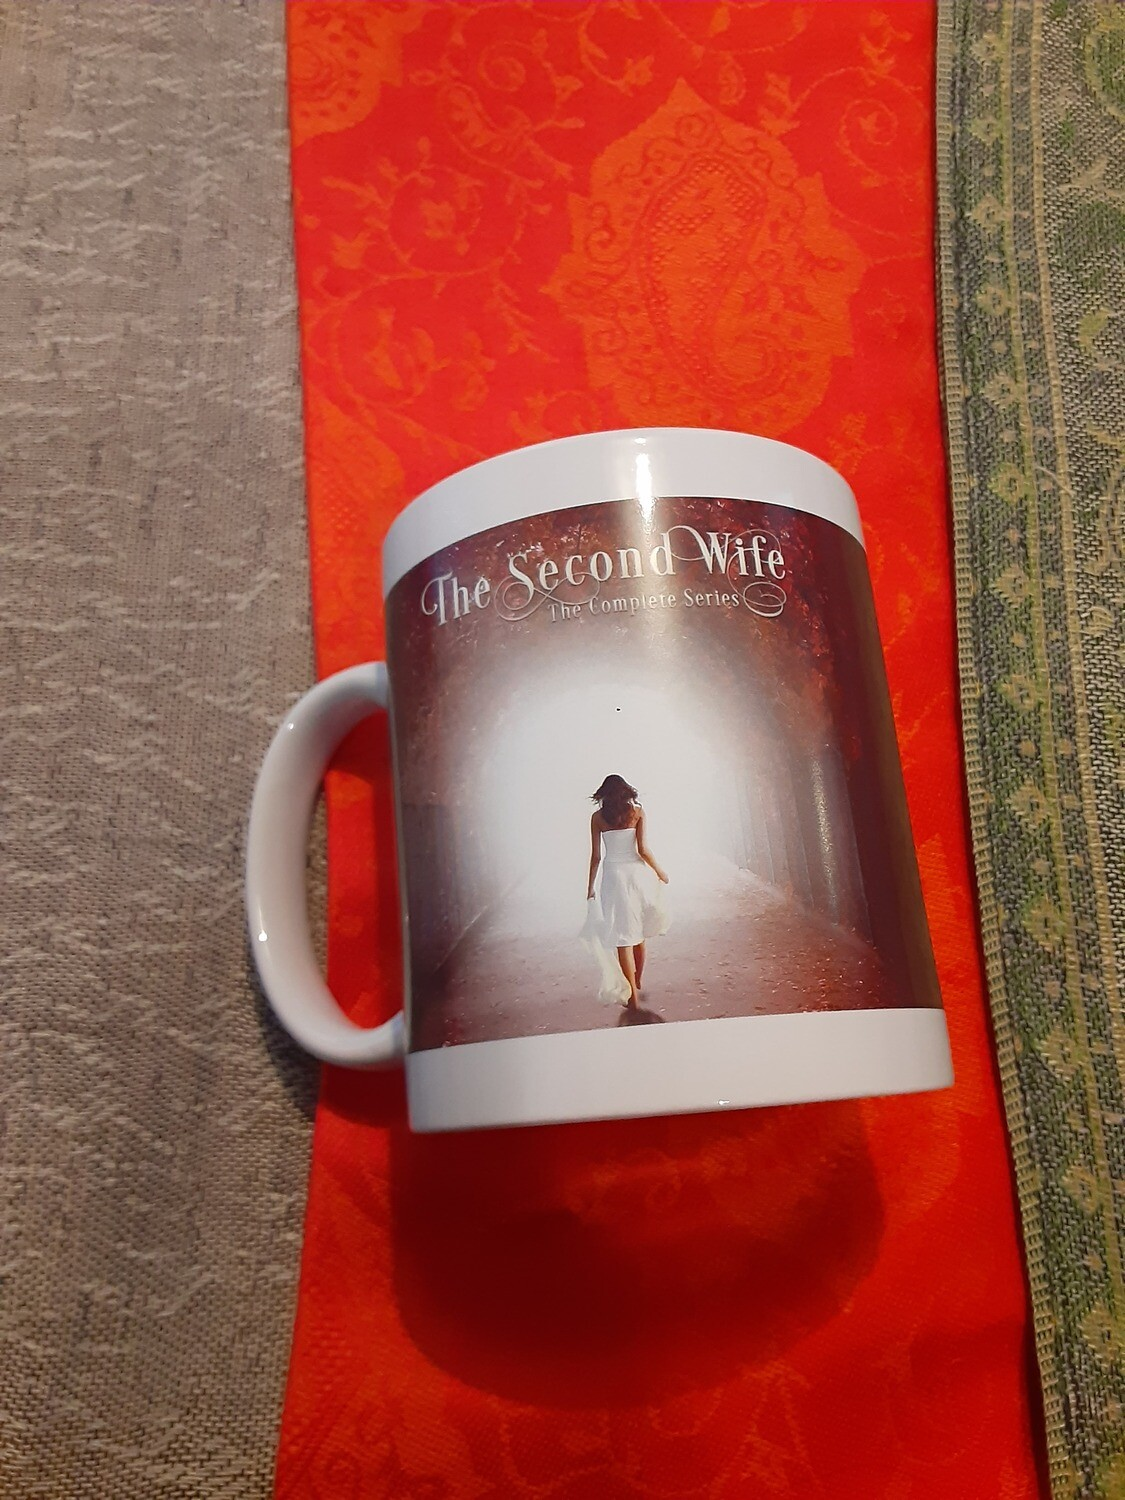 The Second Wife Series Mug